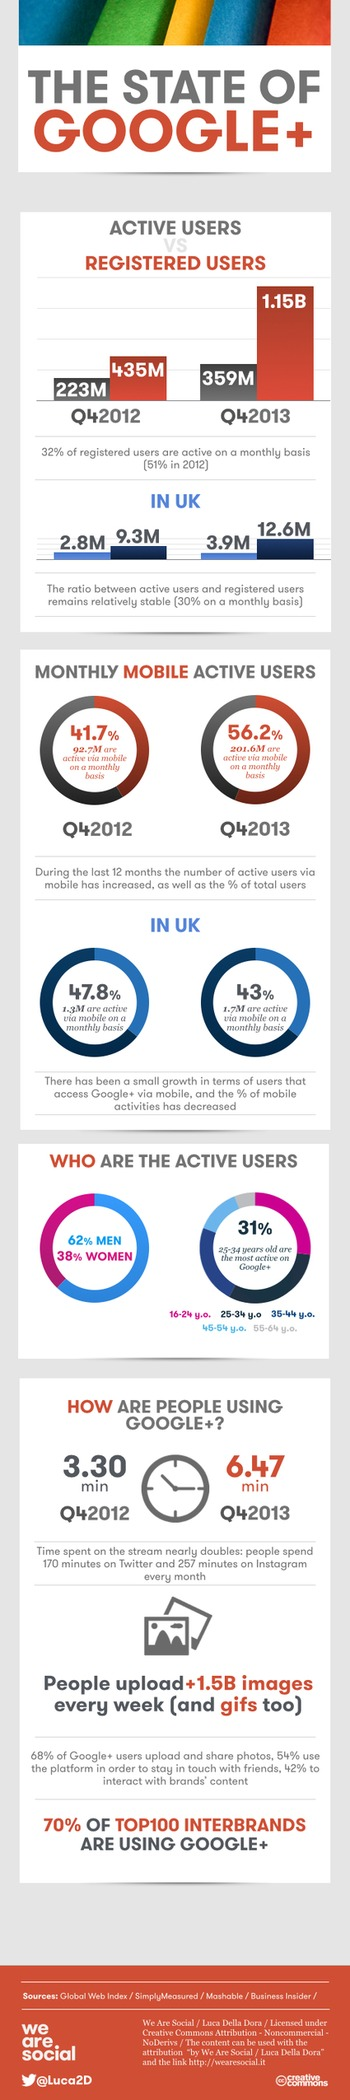 Google+ now has 1.15 billion users! | Business in a Social Media World | Scoop.it